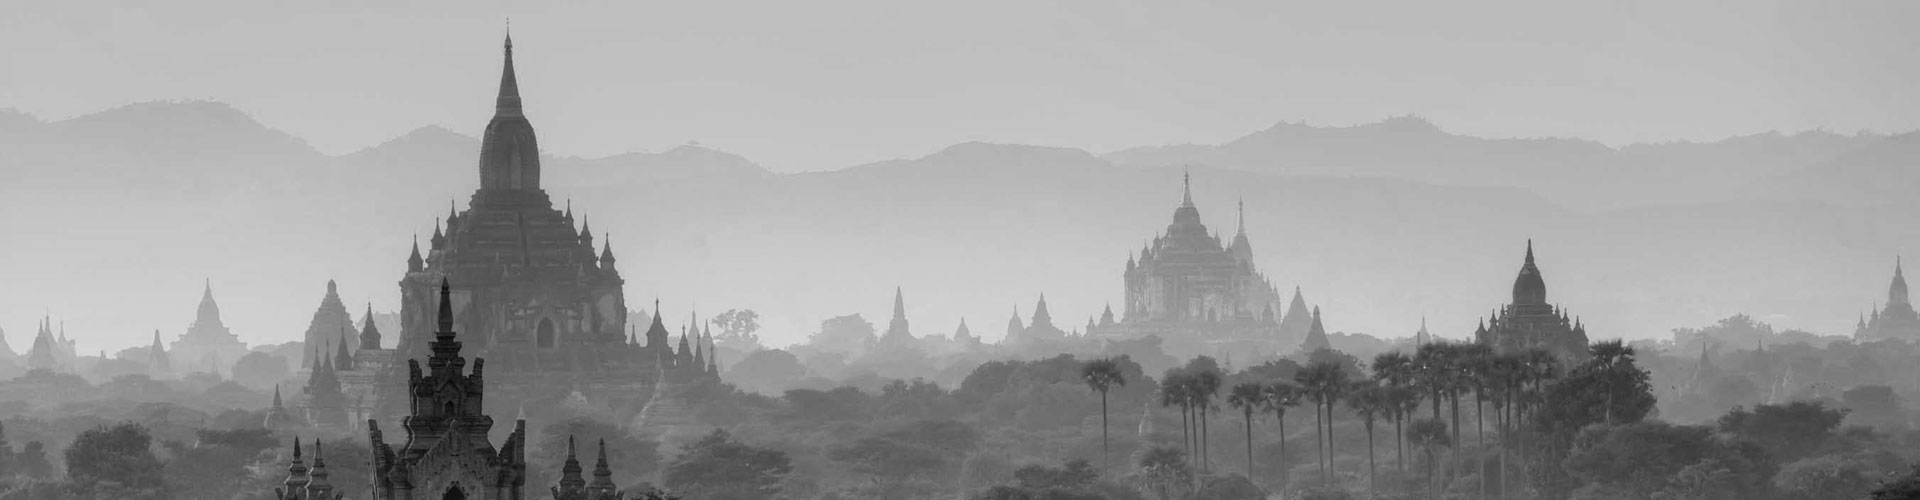 Myanmar (Burma) travel report